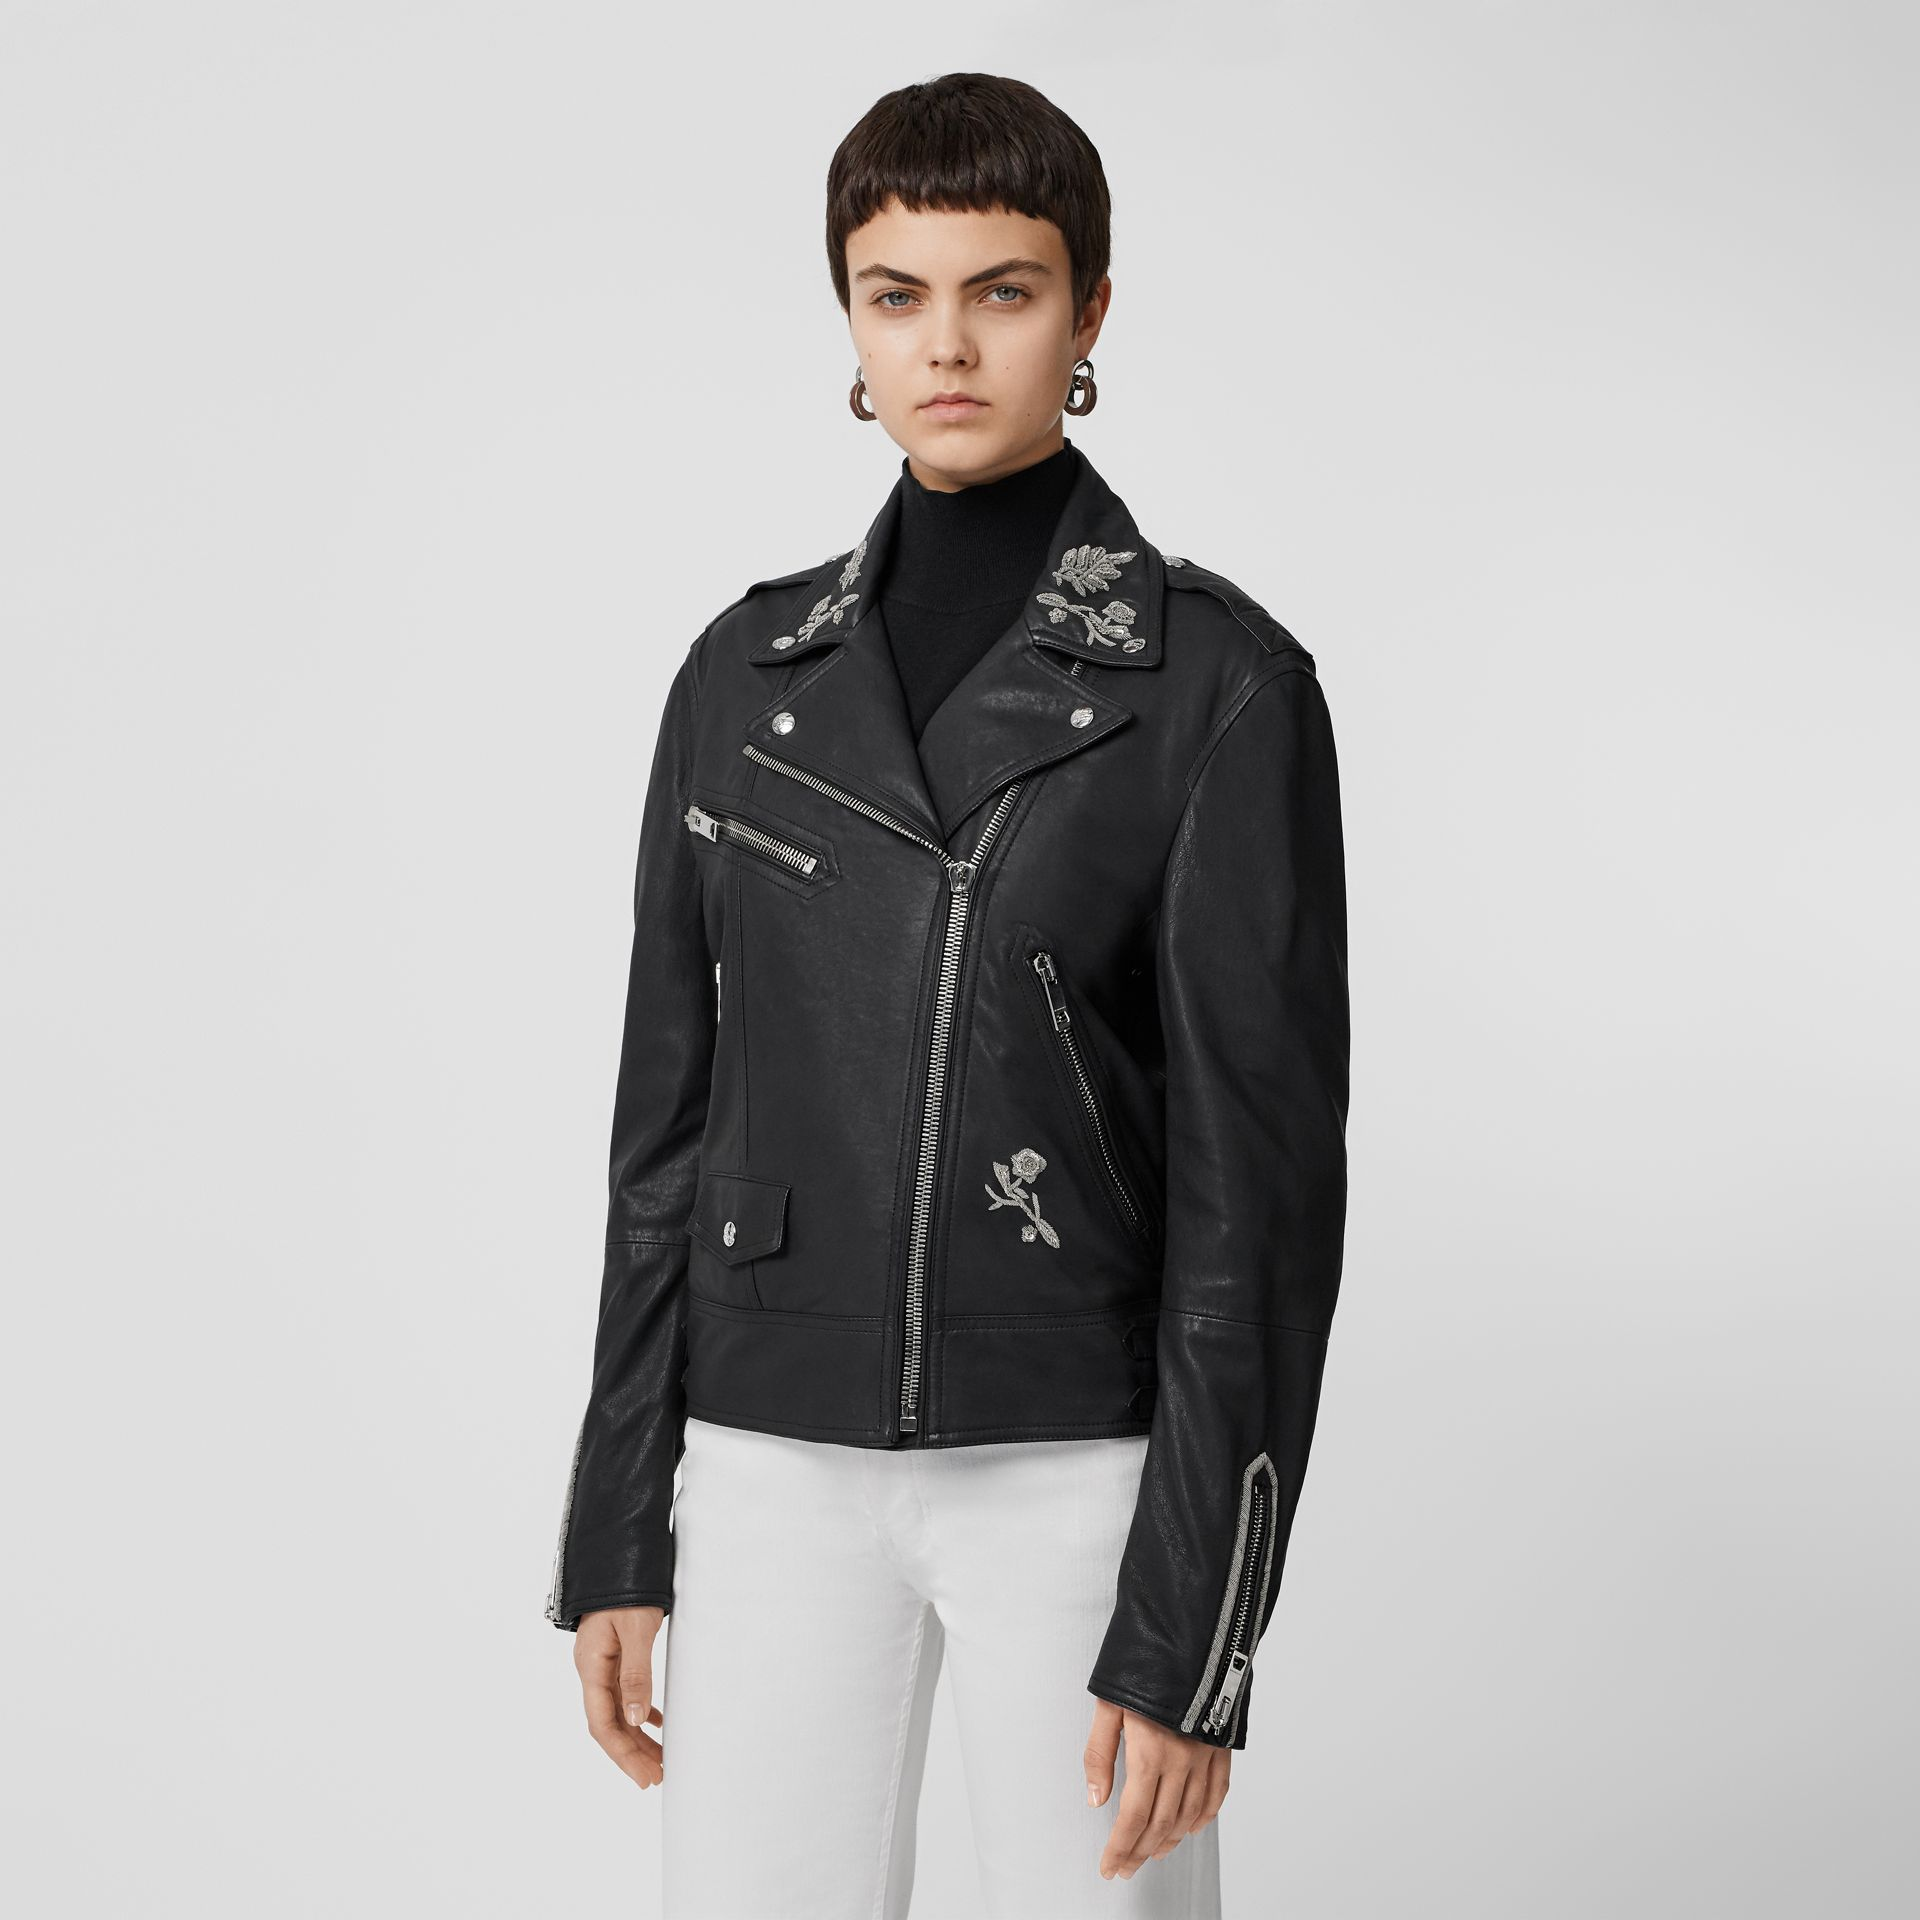 Bullion Floral Lambskin Biker Jacket in Black - Women | Burberry Singapore - gallery image 5